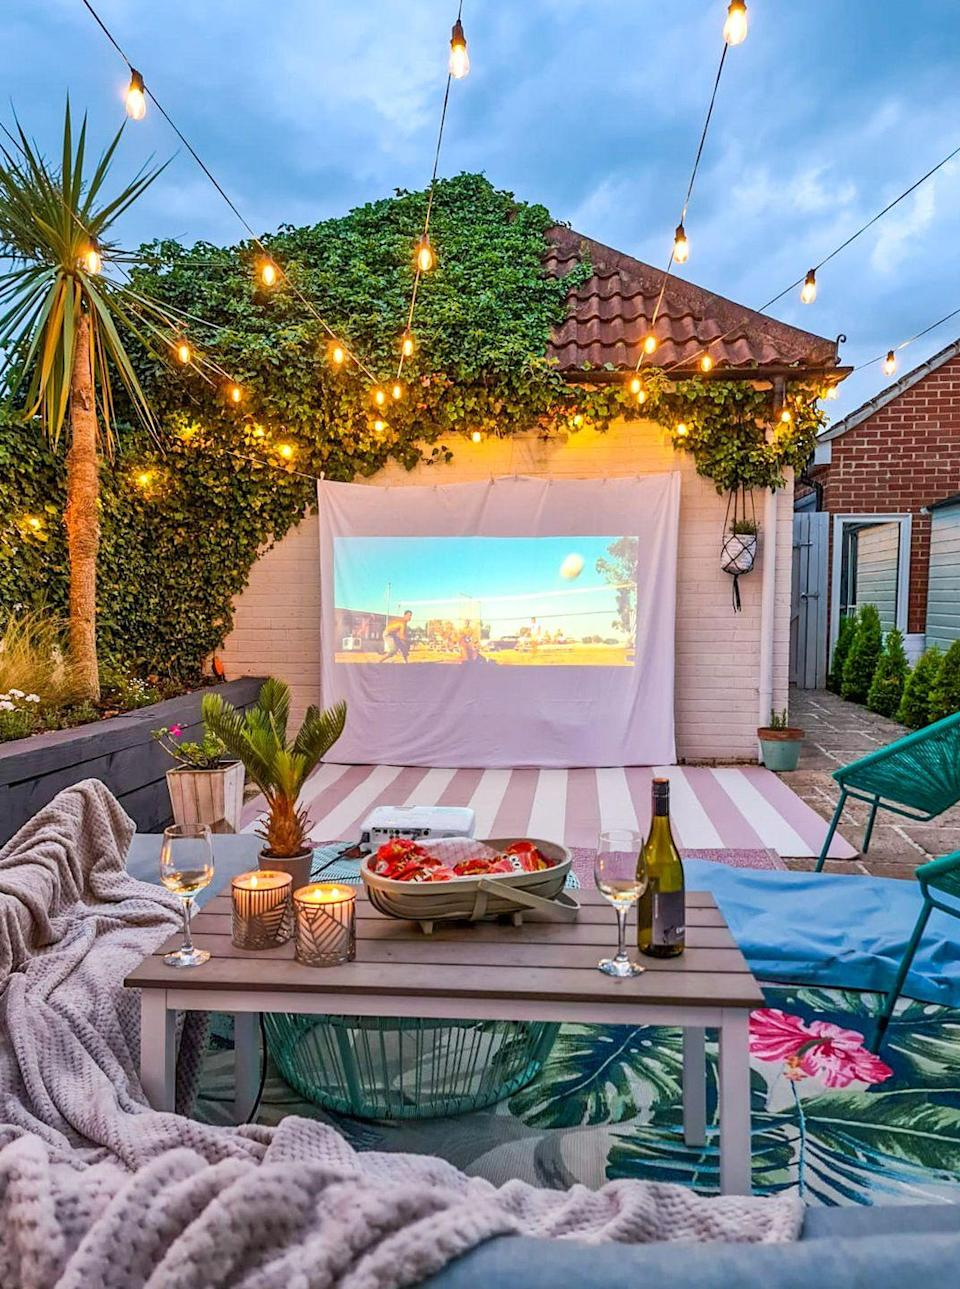 """<p>'To create the DIY Movie Night we used string, pegs and a kingsize white sheet to create the screen and a projector which we placed on a garden table and ran the leads underneath the seating to prevent hazards,' says Kel. </p><p><strong>READ MORE</strong>: <a href=""""https://www.housebeautiful.com/uk/garden/a32639929/outdoor-cinema/"""" rel=""""nofollow noopener"""" target=""""_blank"""" data-ylk=""""slk:How to create an outdoor cinema in your garden in 6 simple steps"""" class=""""link rapid-noclick-resp"""">How to create an outdoor cinema in your garden in 6 simple steps</a> </p>"""